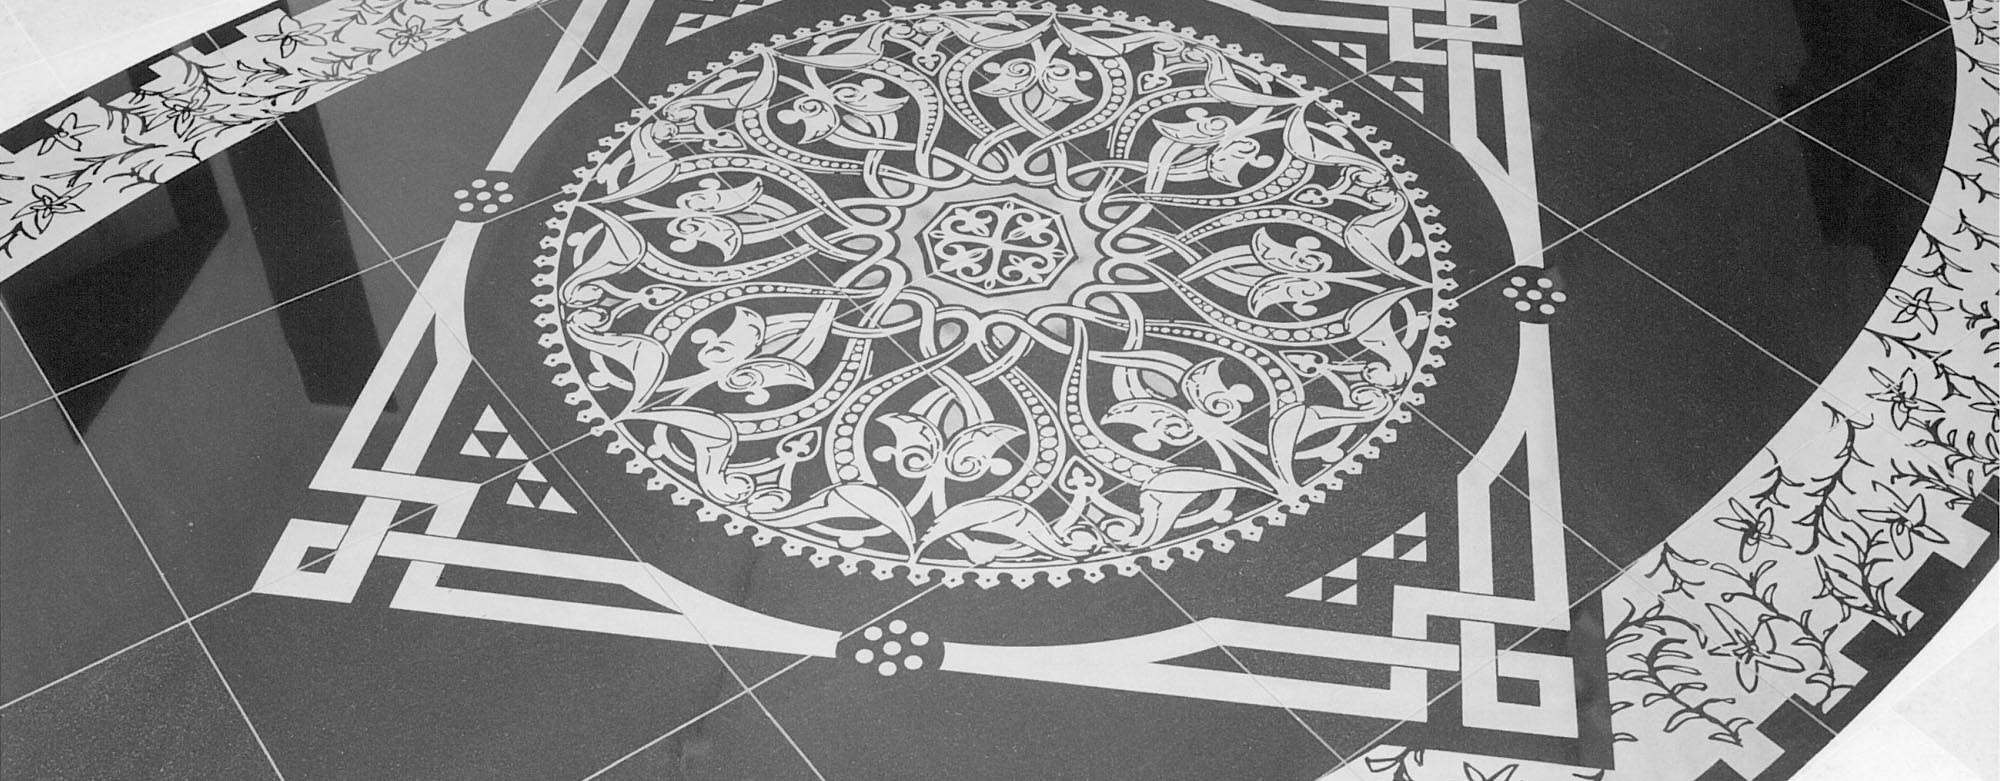 An image of a widely engraved floor.